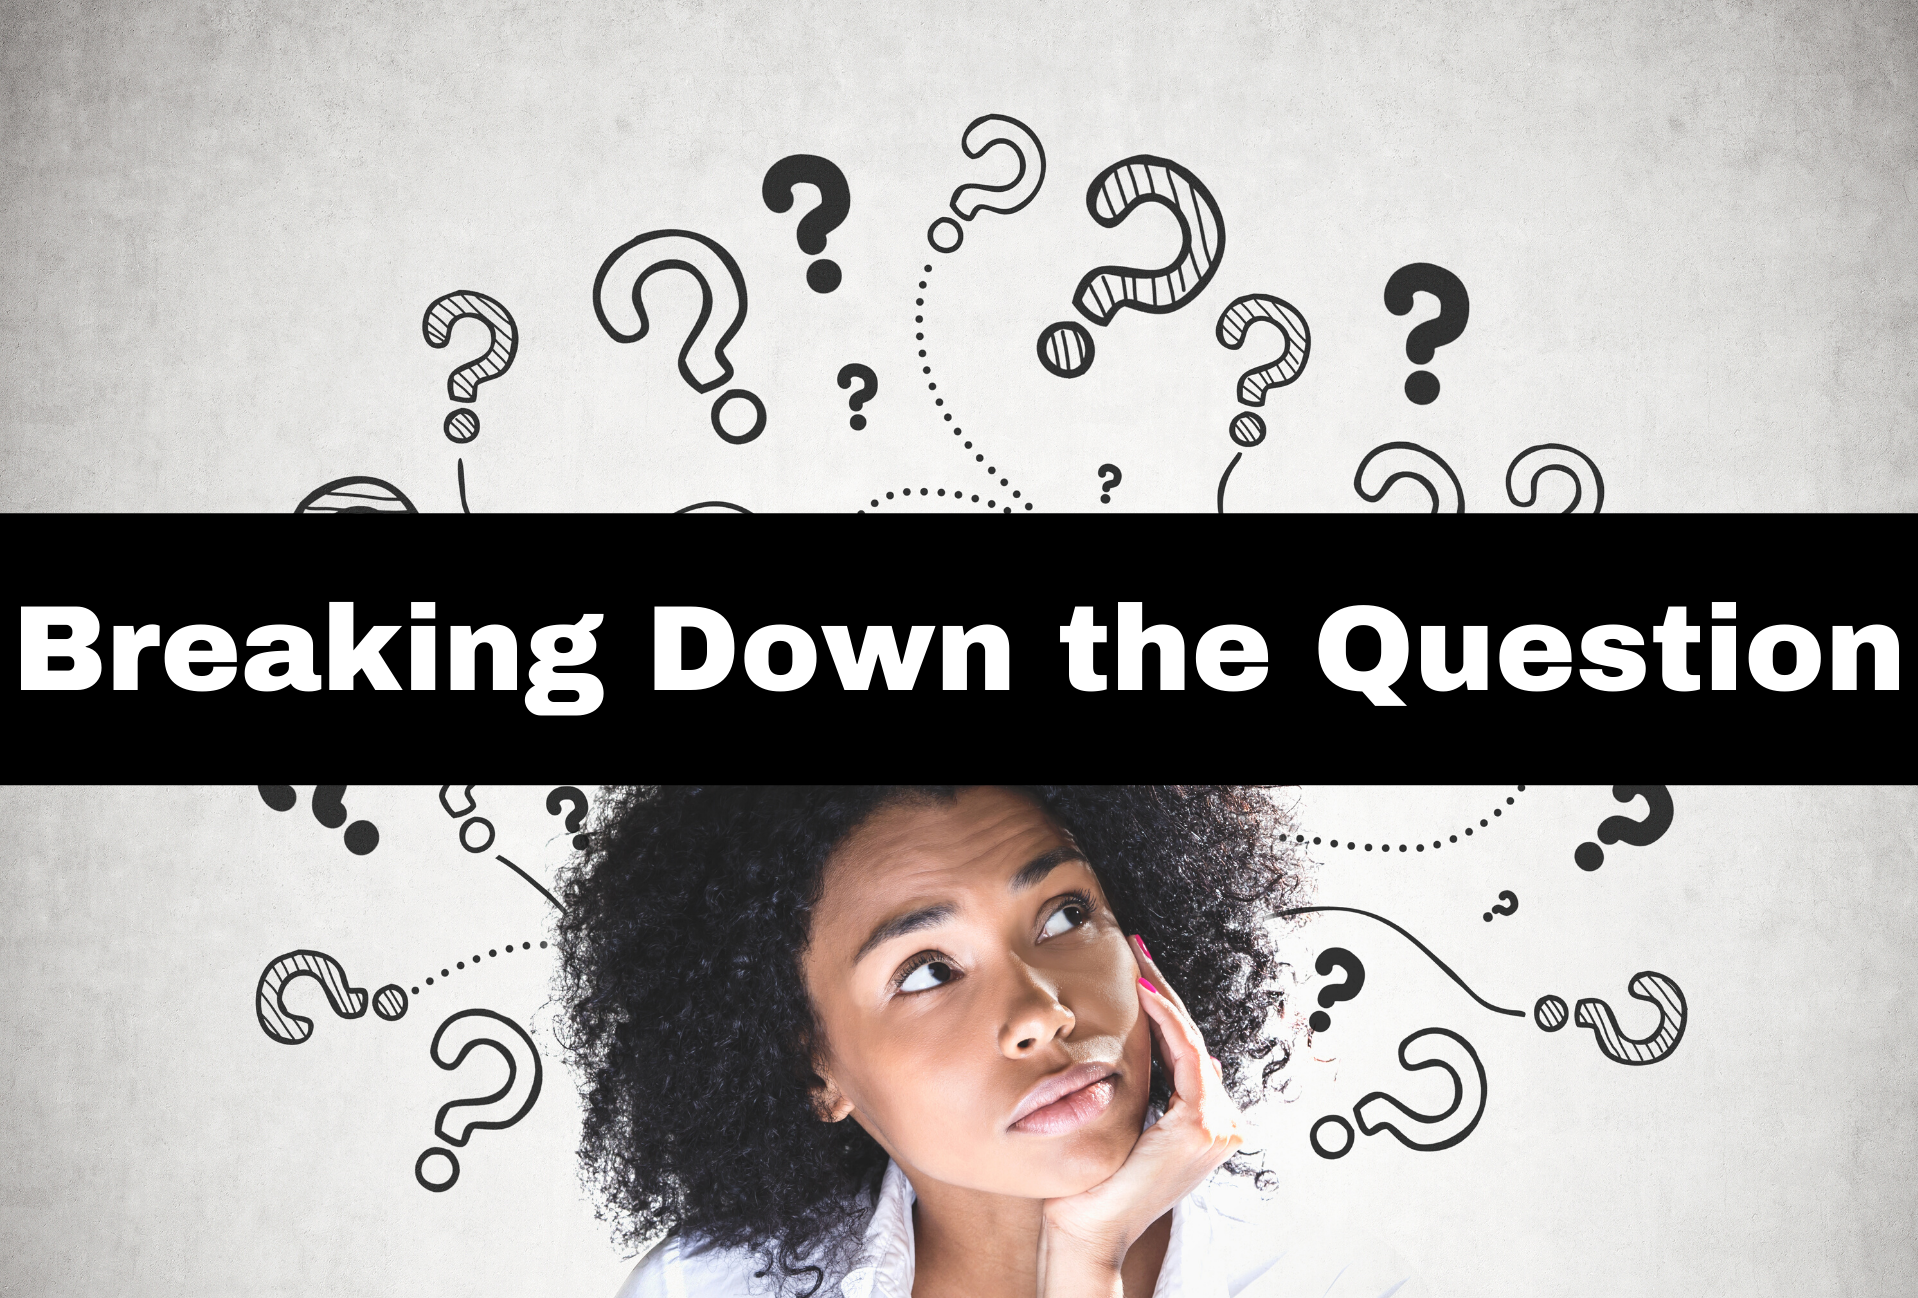 Breaking down the question